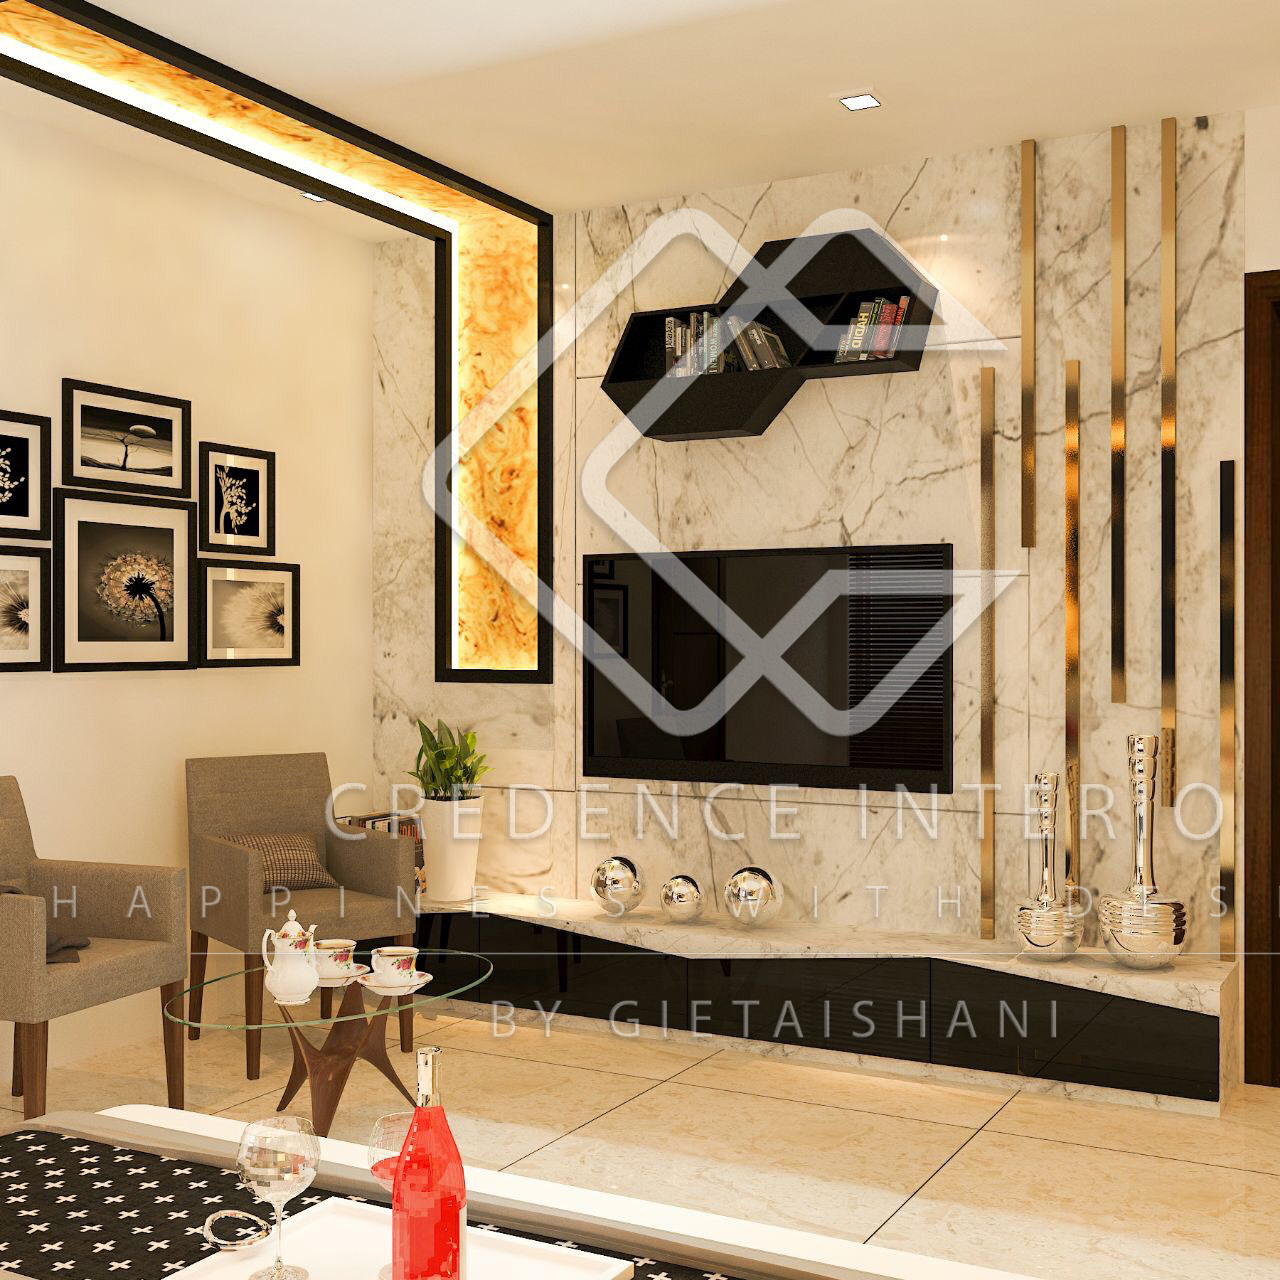 Wall Art Credence Credence Interio Interior Designers Decorators In New Delhi